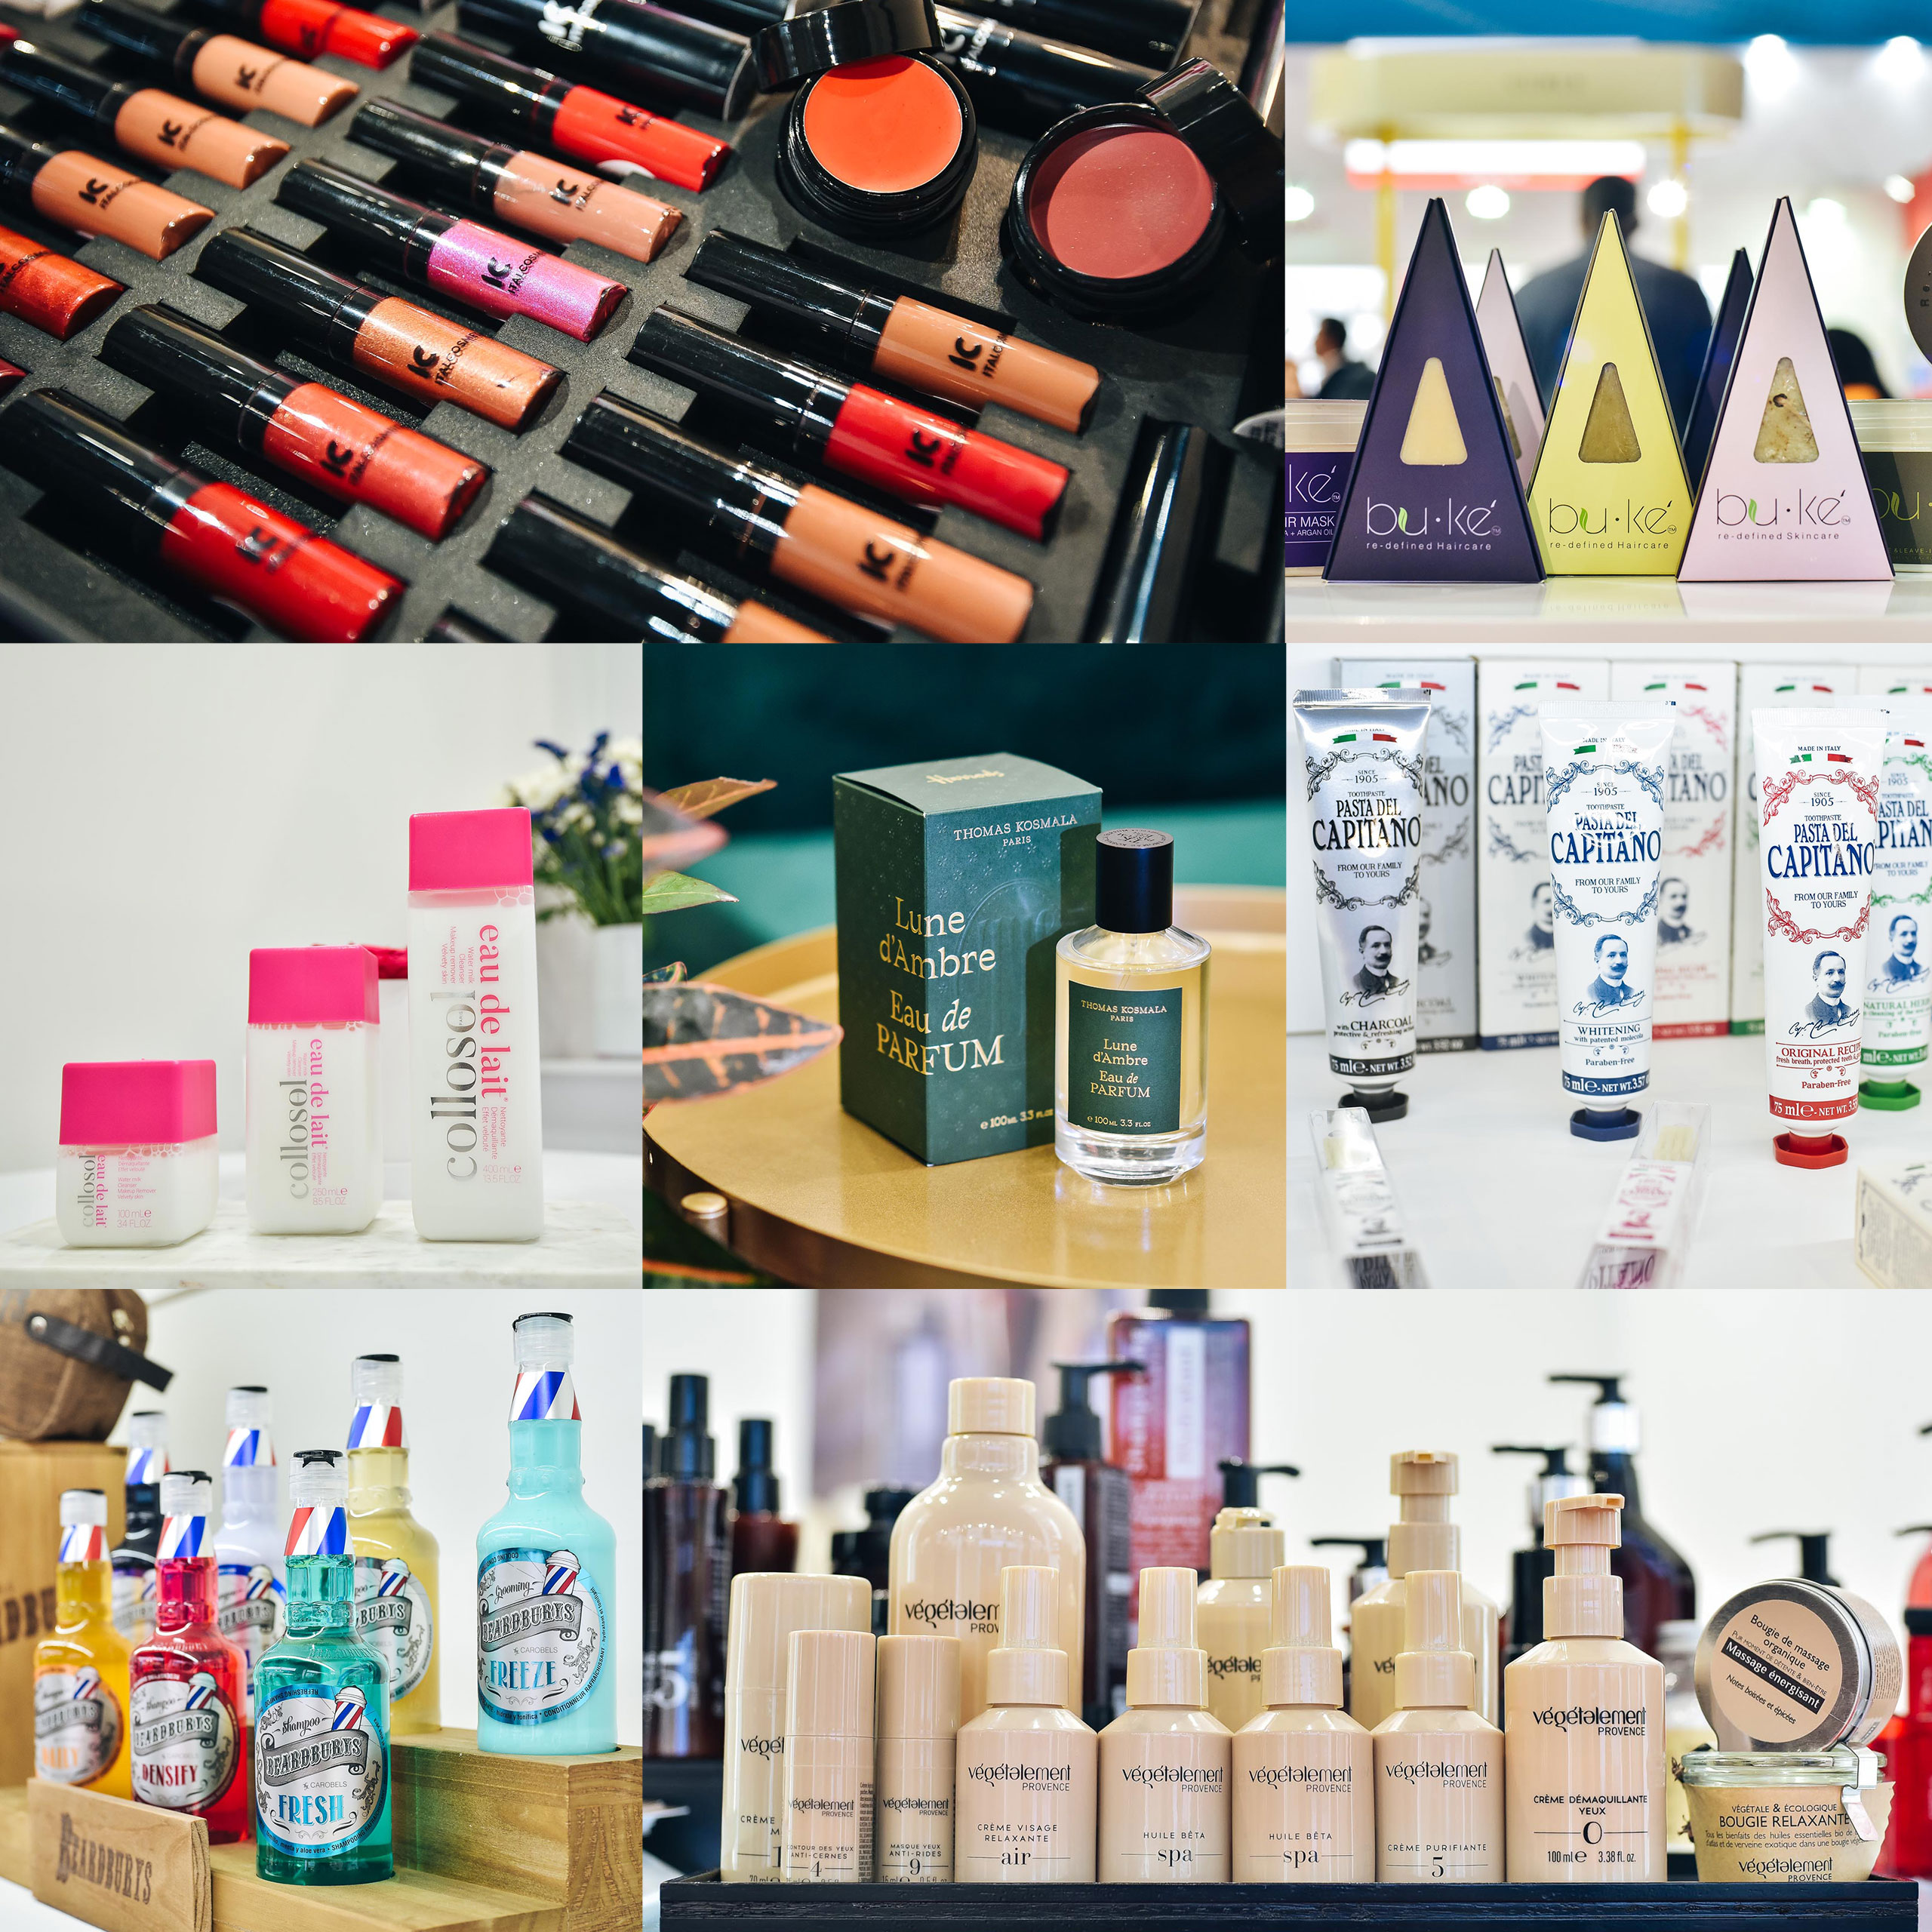 Beautyworld Middle East - Exhibitors dish up veritable smorgasbord of delectable product launches at Beautyworld Middle East 2019